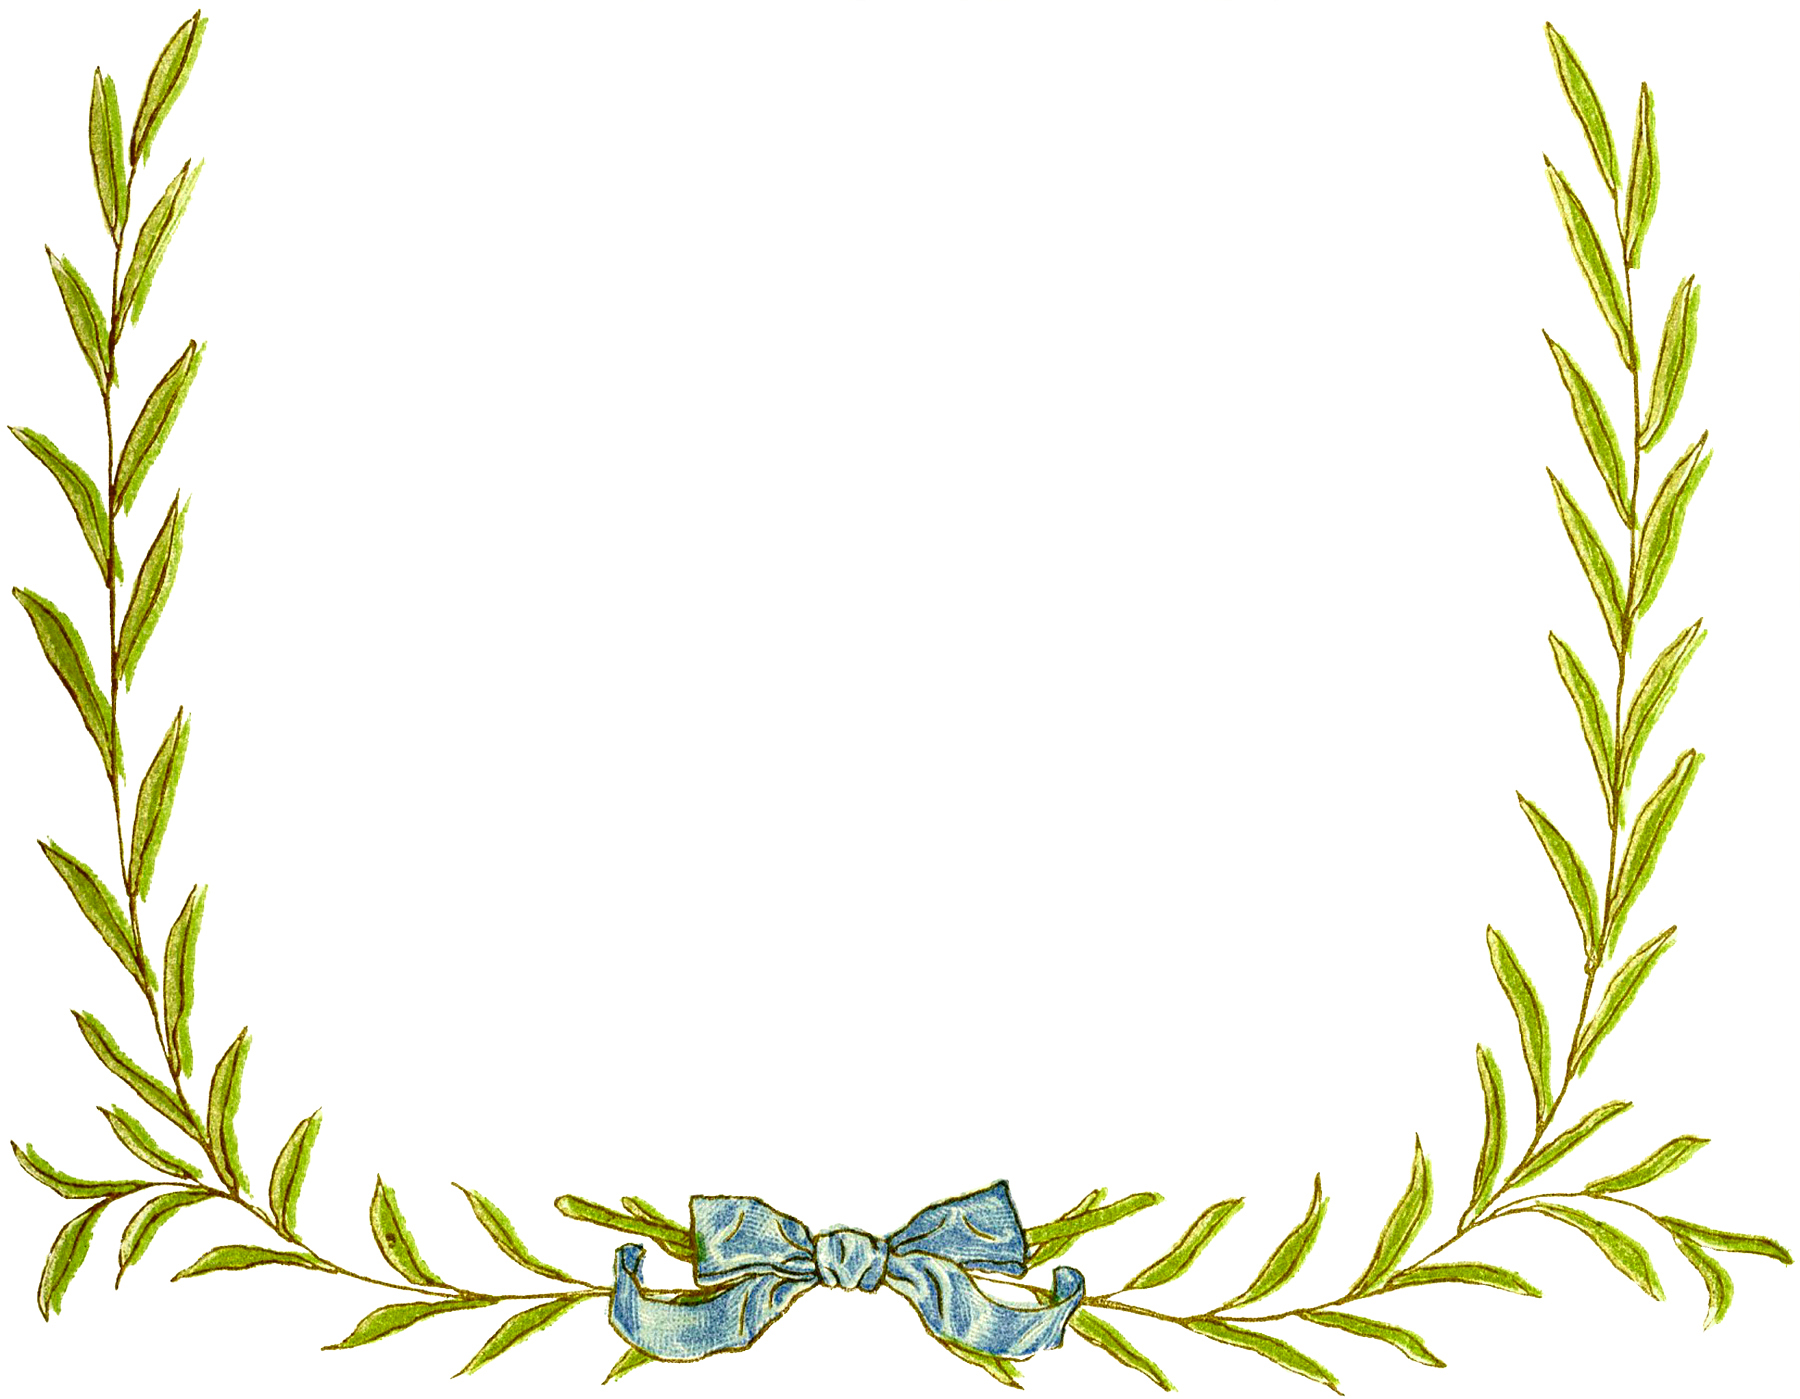 Wreath template leaves clipart png royalty free library 12 Christmas Wreath Frame Images - The Graphics Fairy png royalty free library